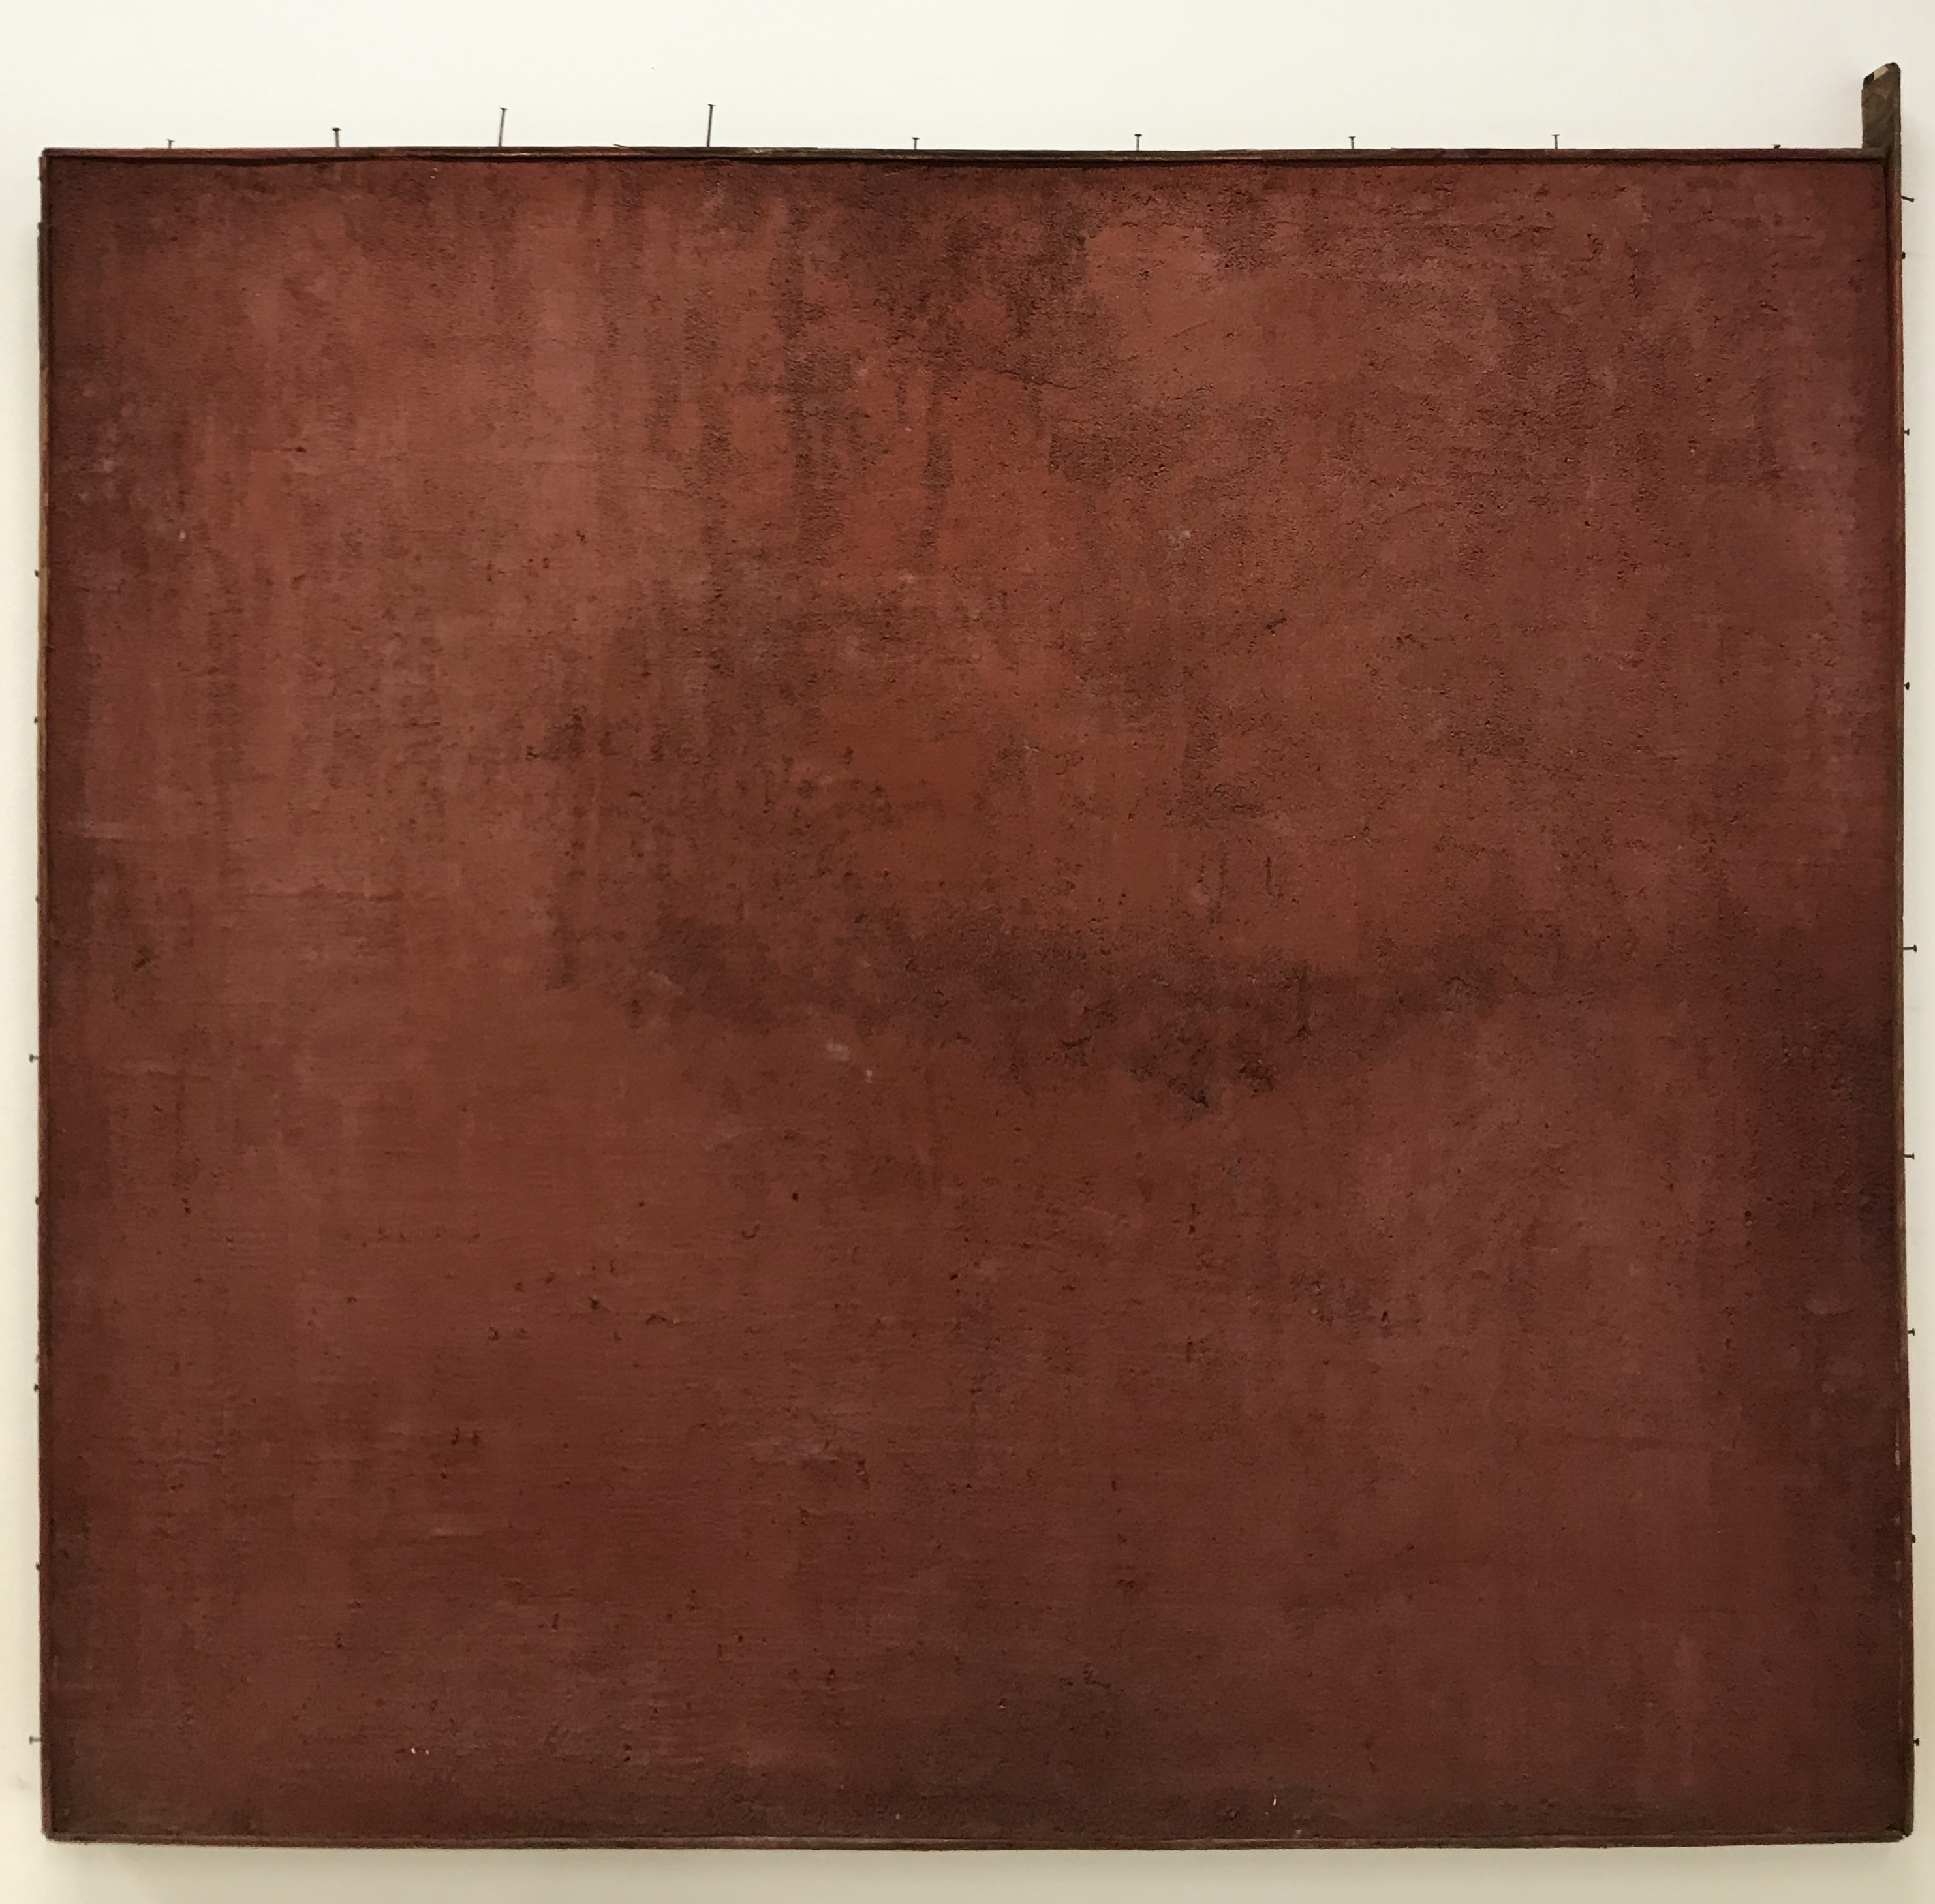 David Ireland Untitled (Cement Painting - Red